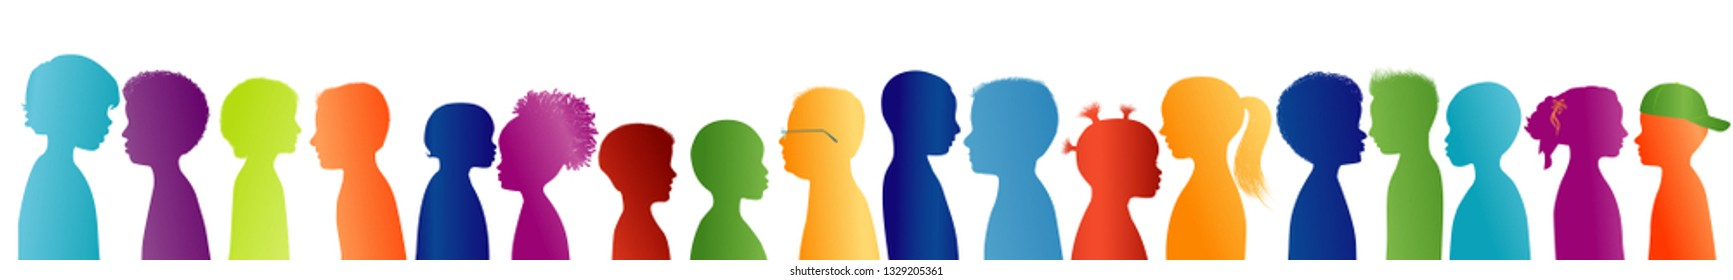 Silhouette group of colored profile children. Communication between multi-ethnic children. Children talking